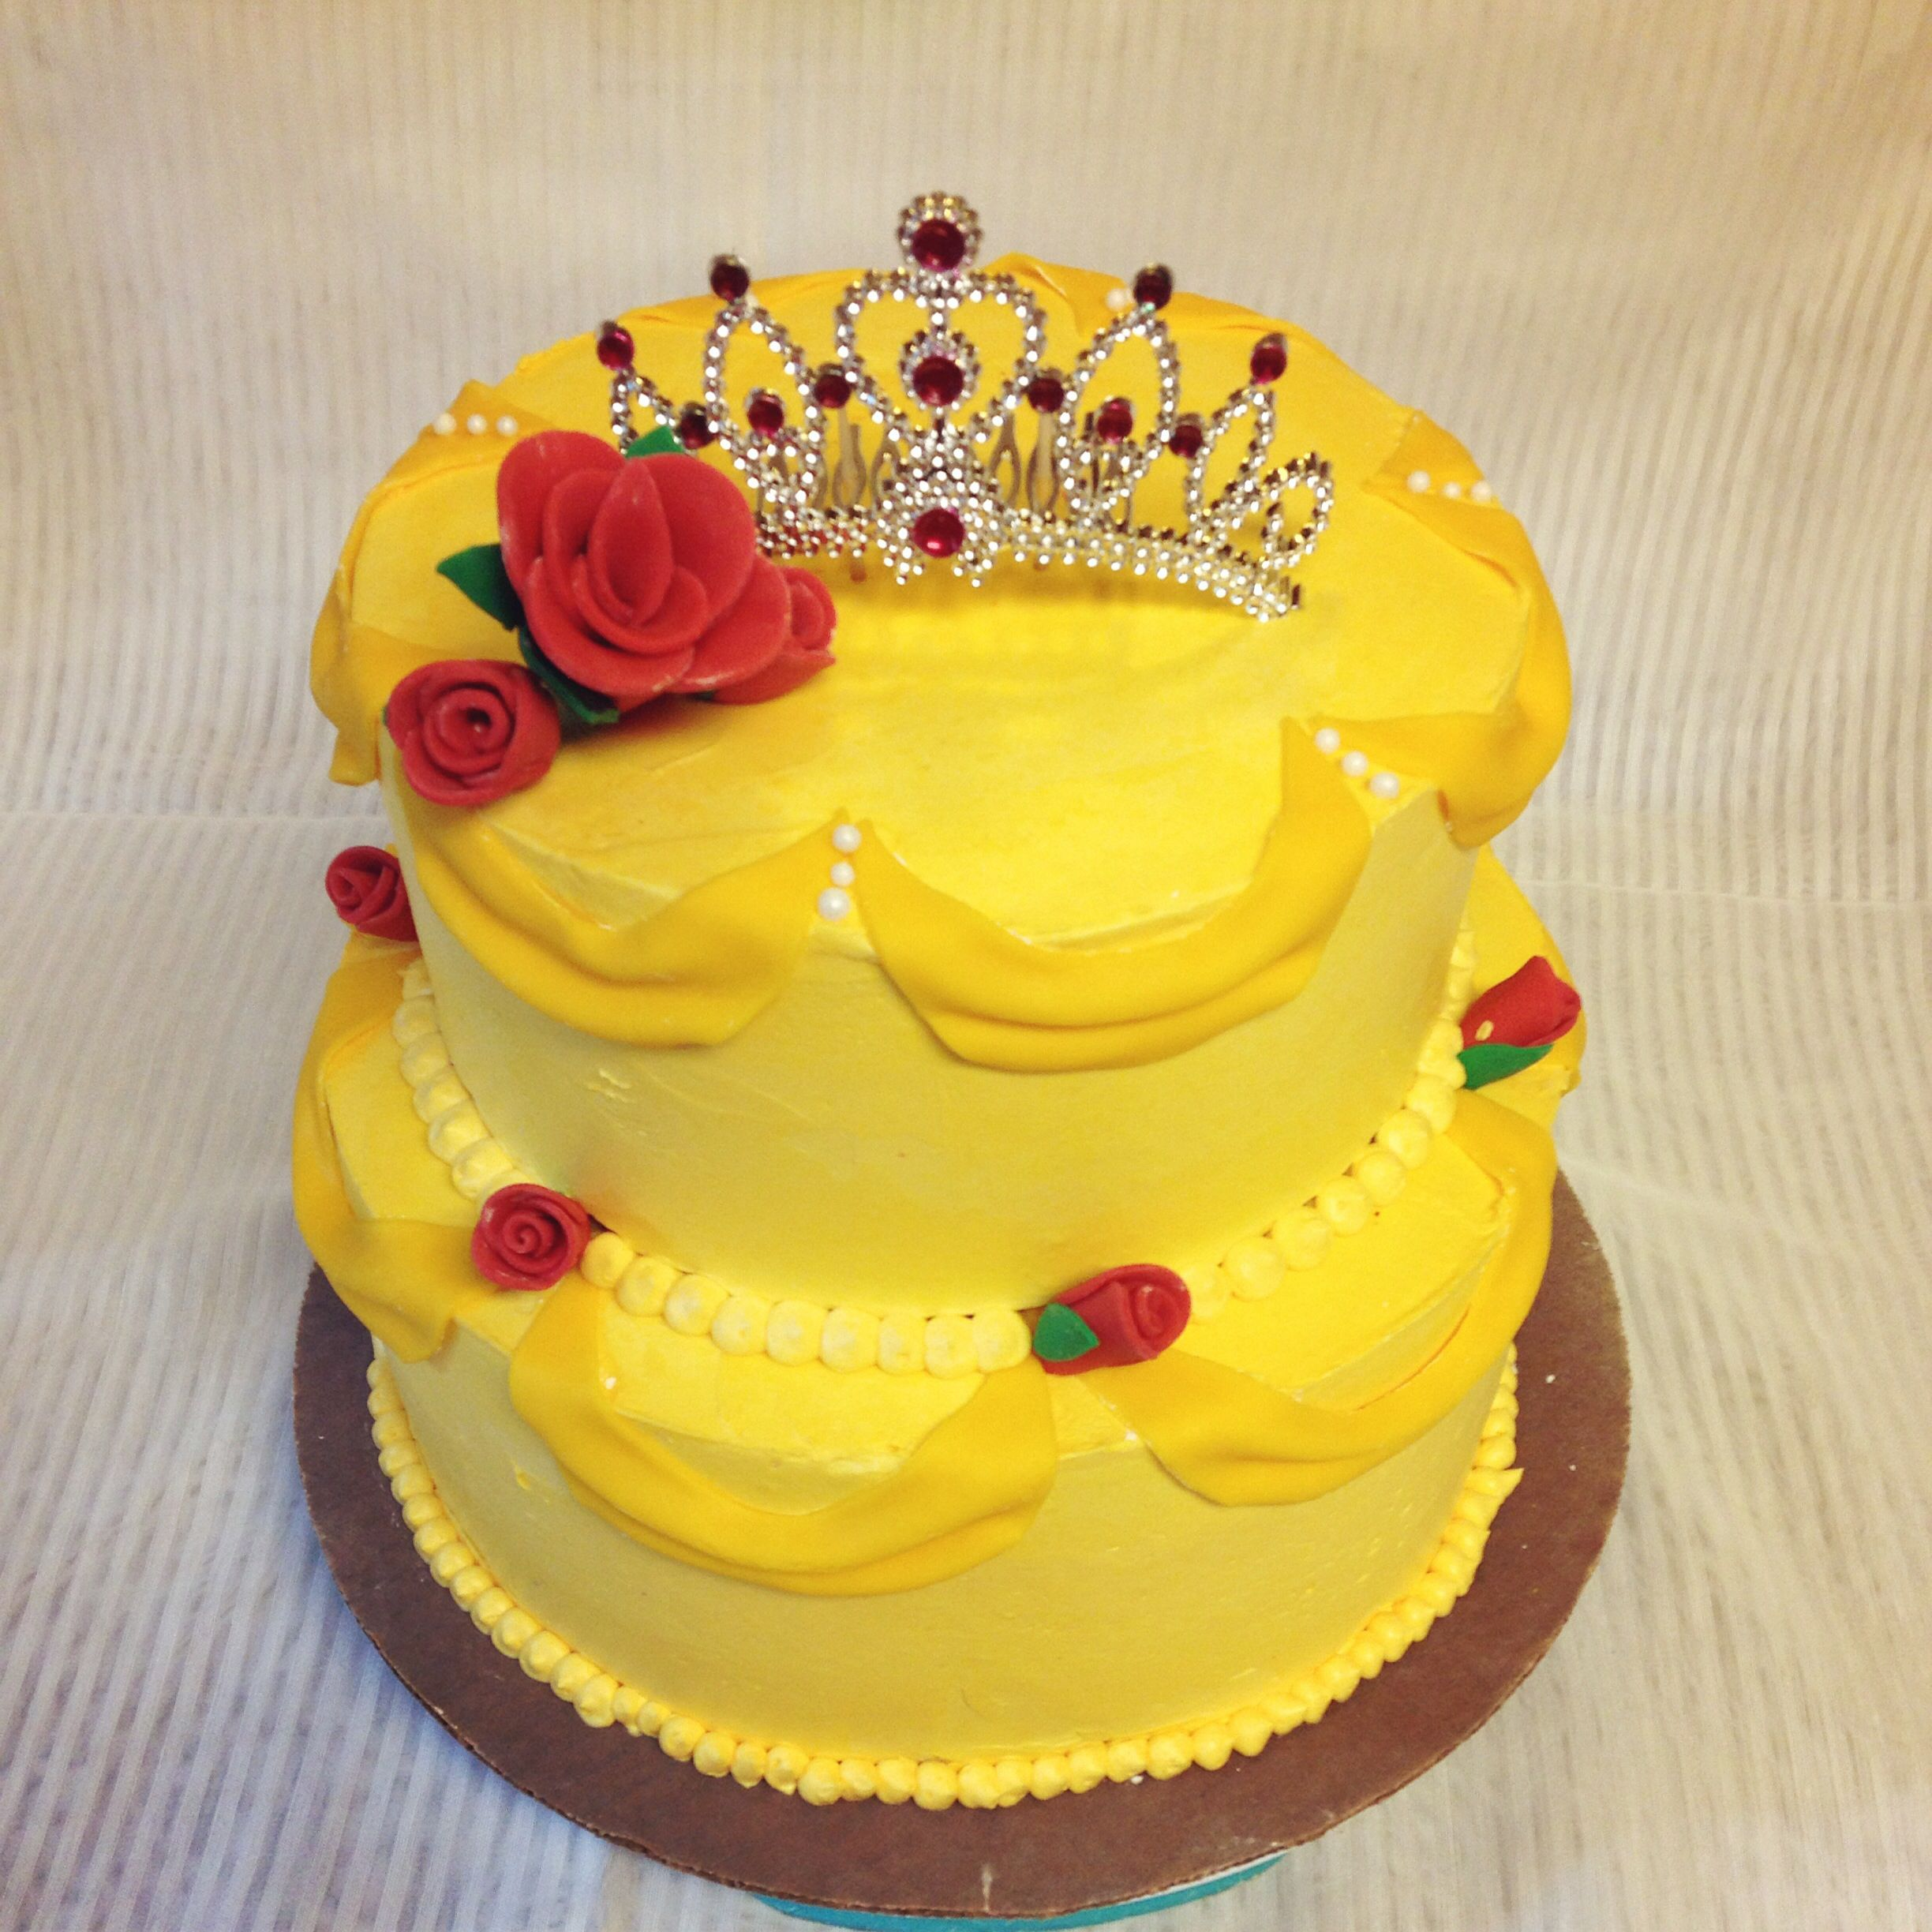 Beauty and The Beast cake for a first birthday party Cake Art